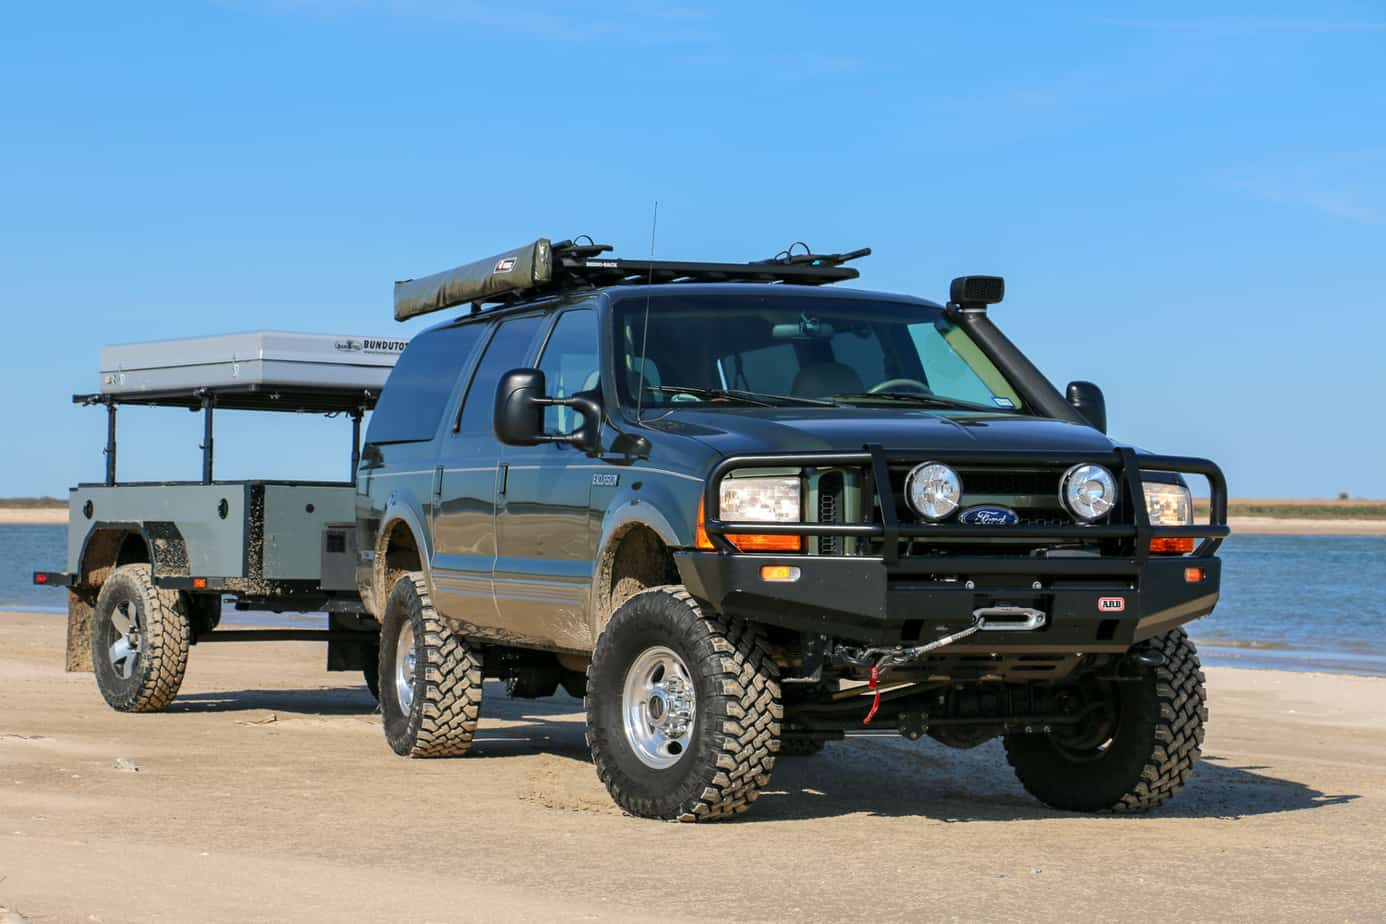 While We Wonu0027t Be Bold Enough To Declare It The Best Roof Rack On The  Market, It Is Certainly In The Running.